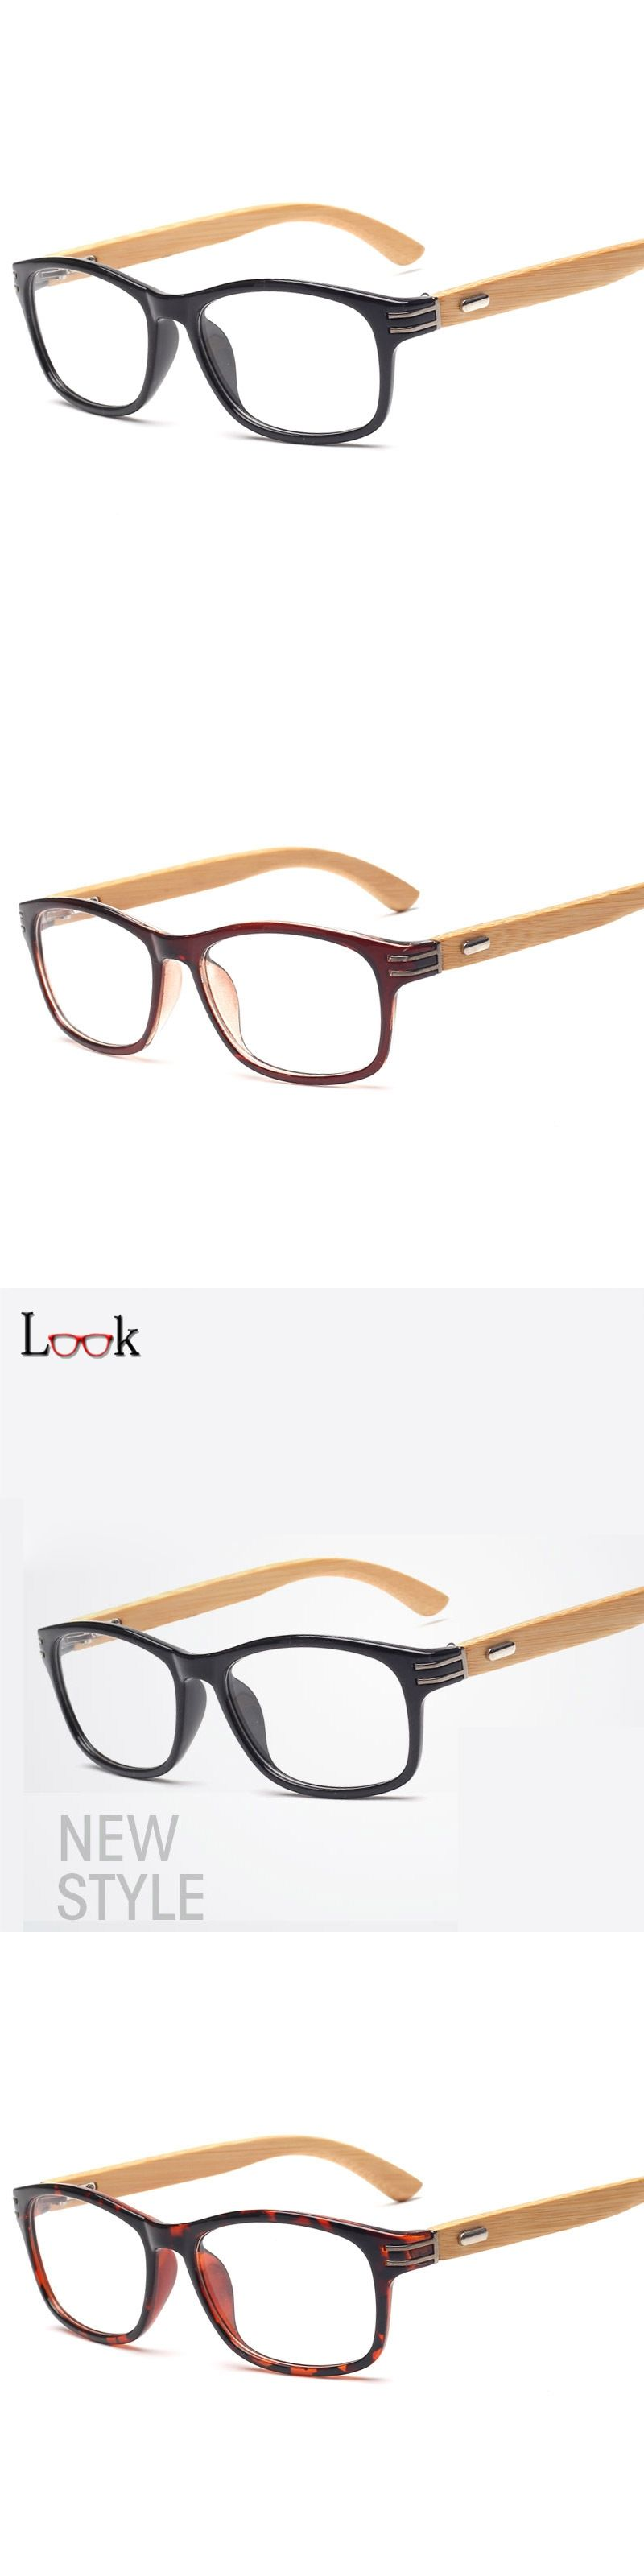 Brand 2017 Glasses Frame Wooden Fashion Retro Bamboo Eyeglasses ...